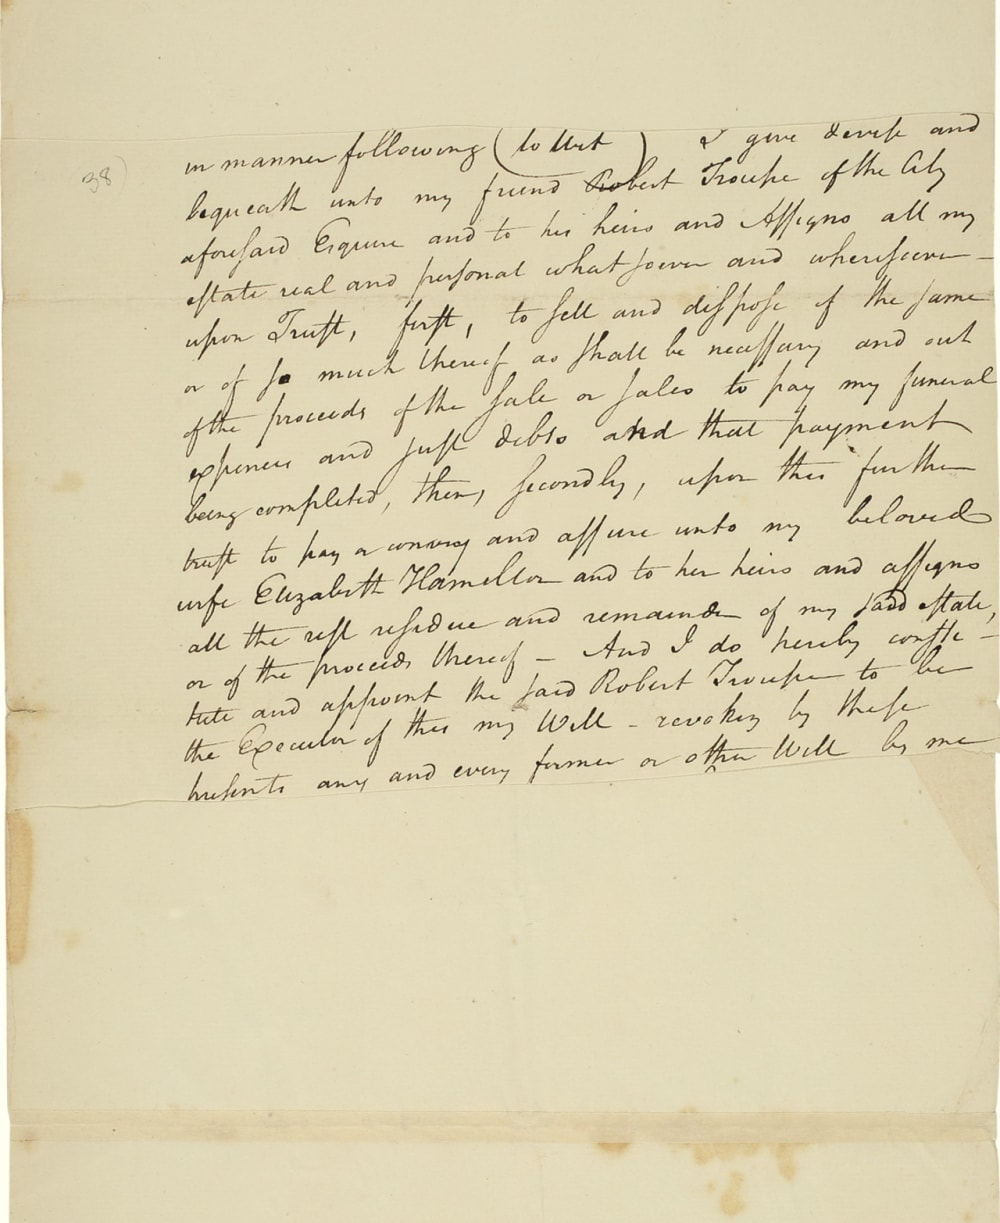 6. FRAGMENT FROM A WILL APPARENTLY WRITTEN IN ANTICIPATION OF A 1795 DUEL // LOT 1044